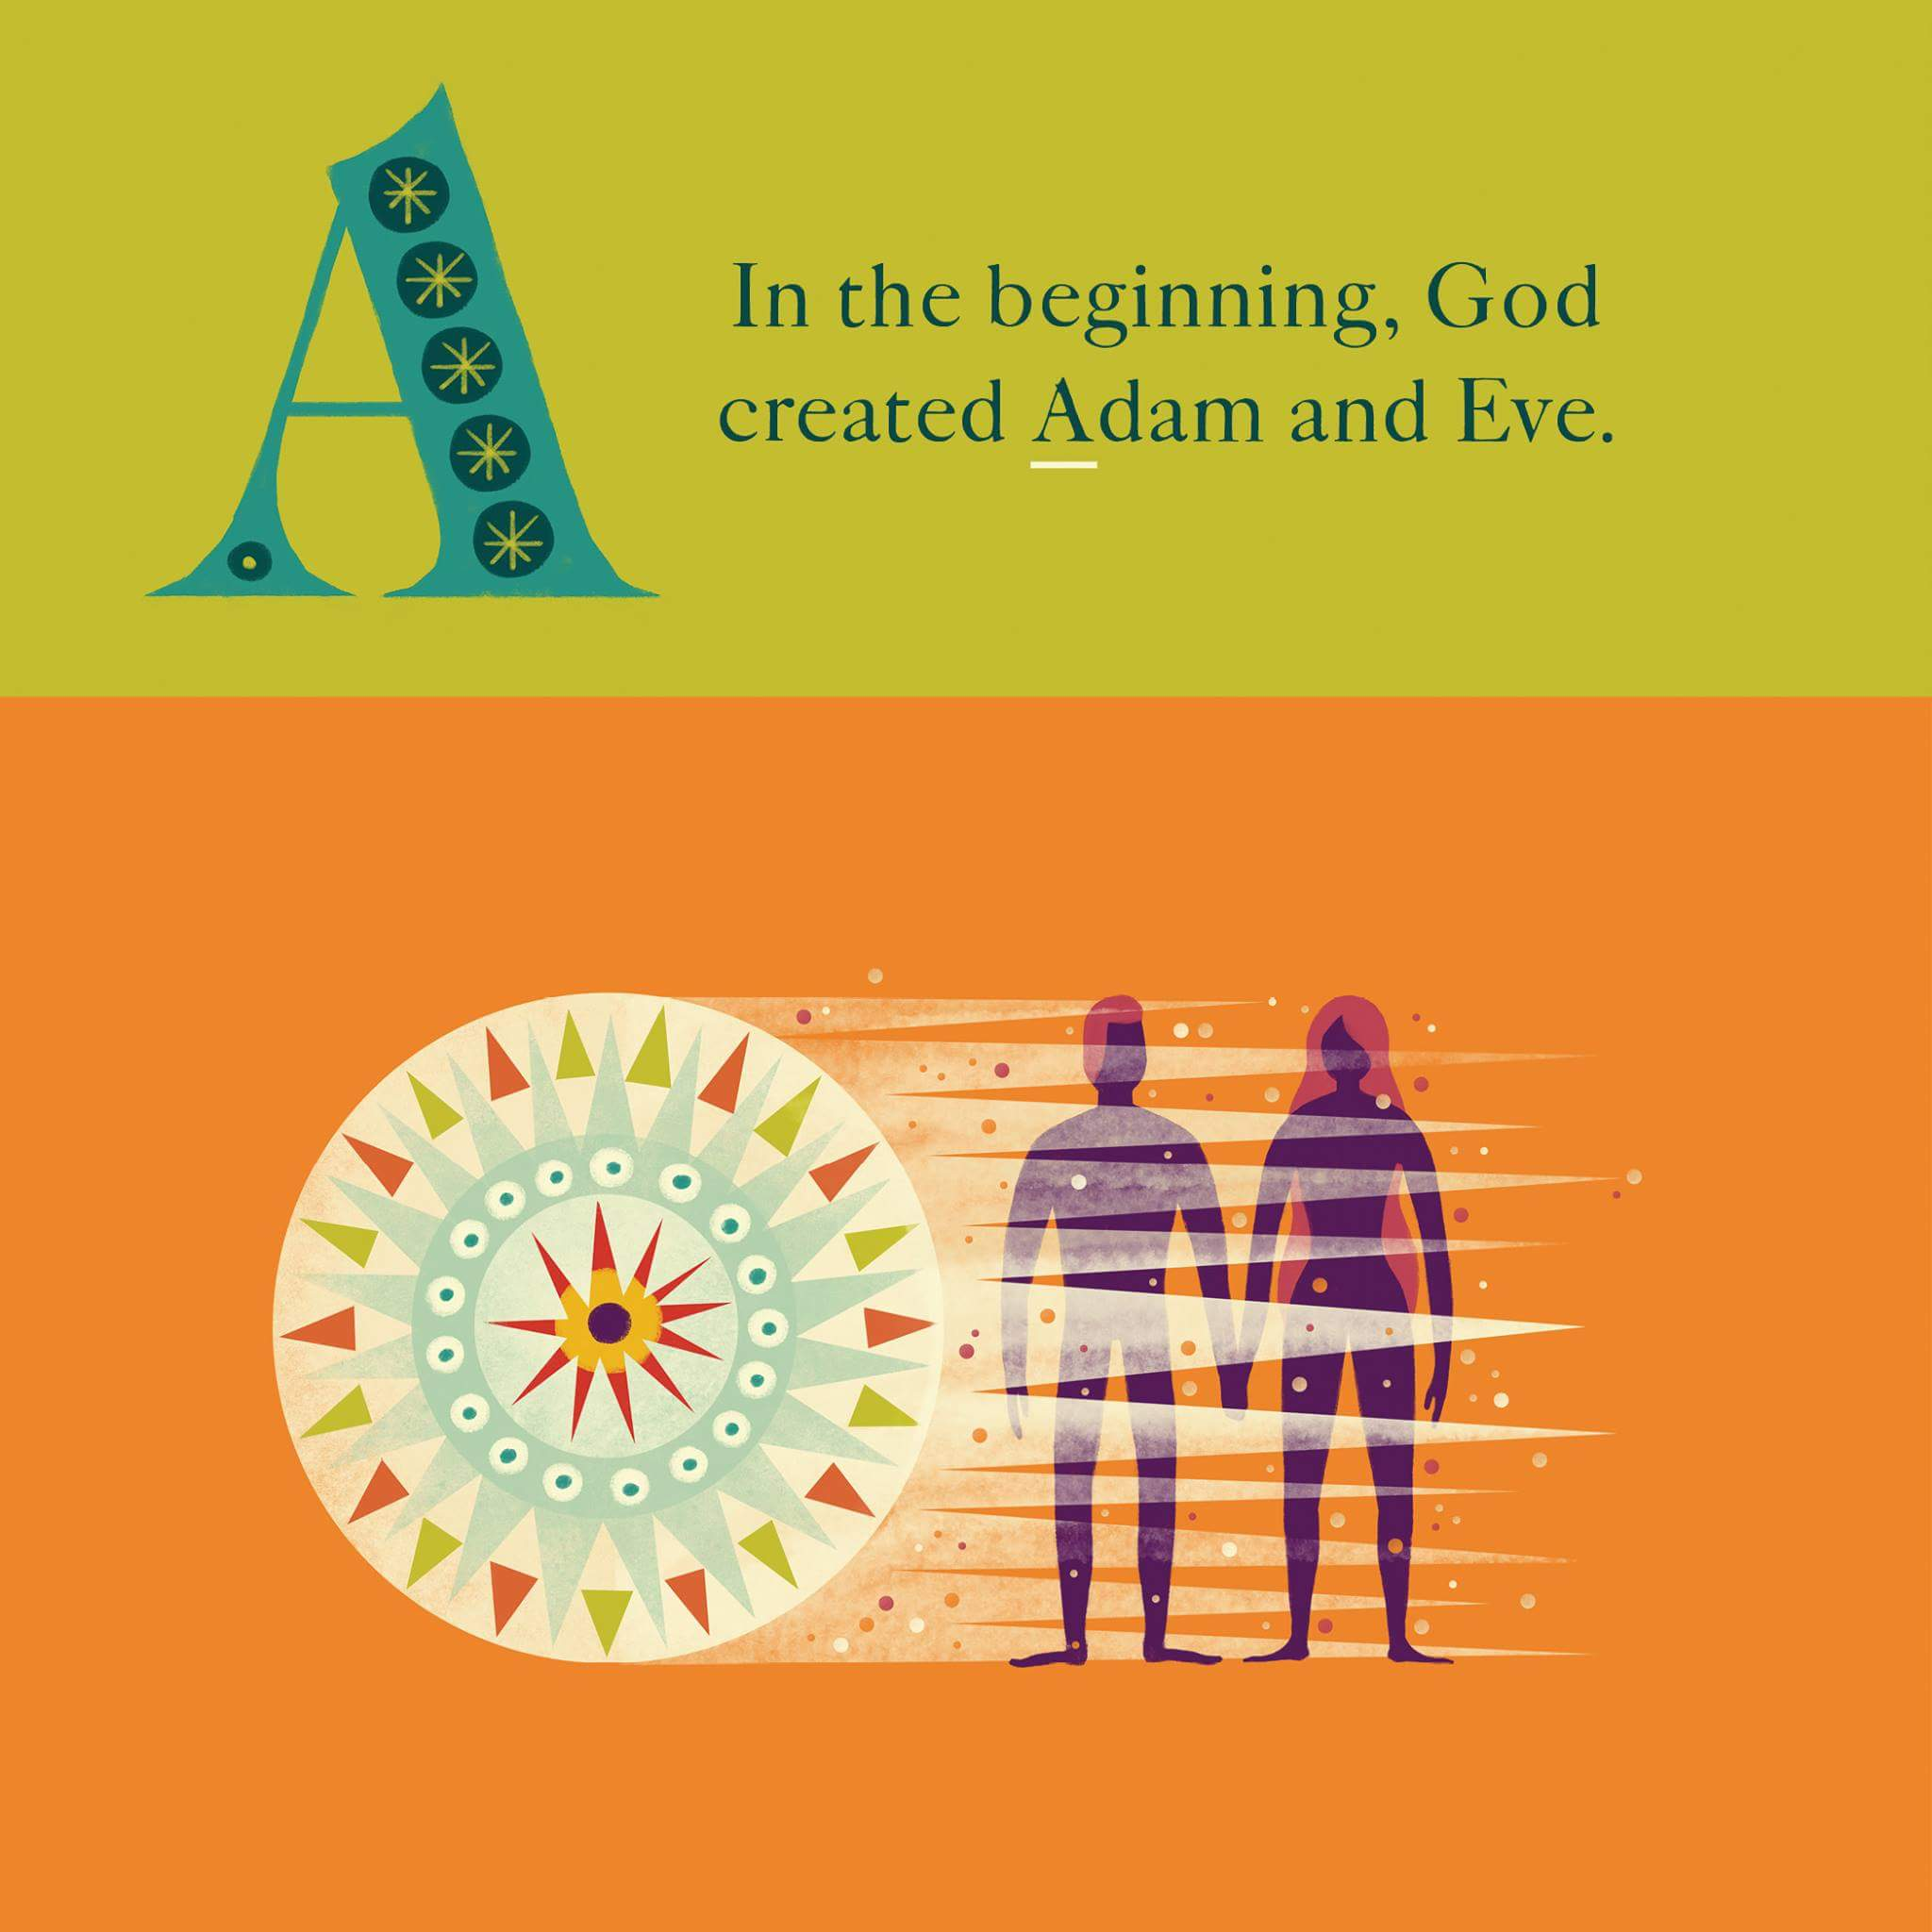 In the beginning, God created Adam and Eve.